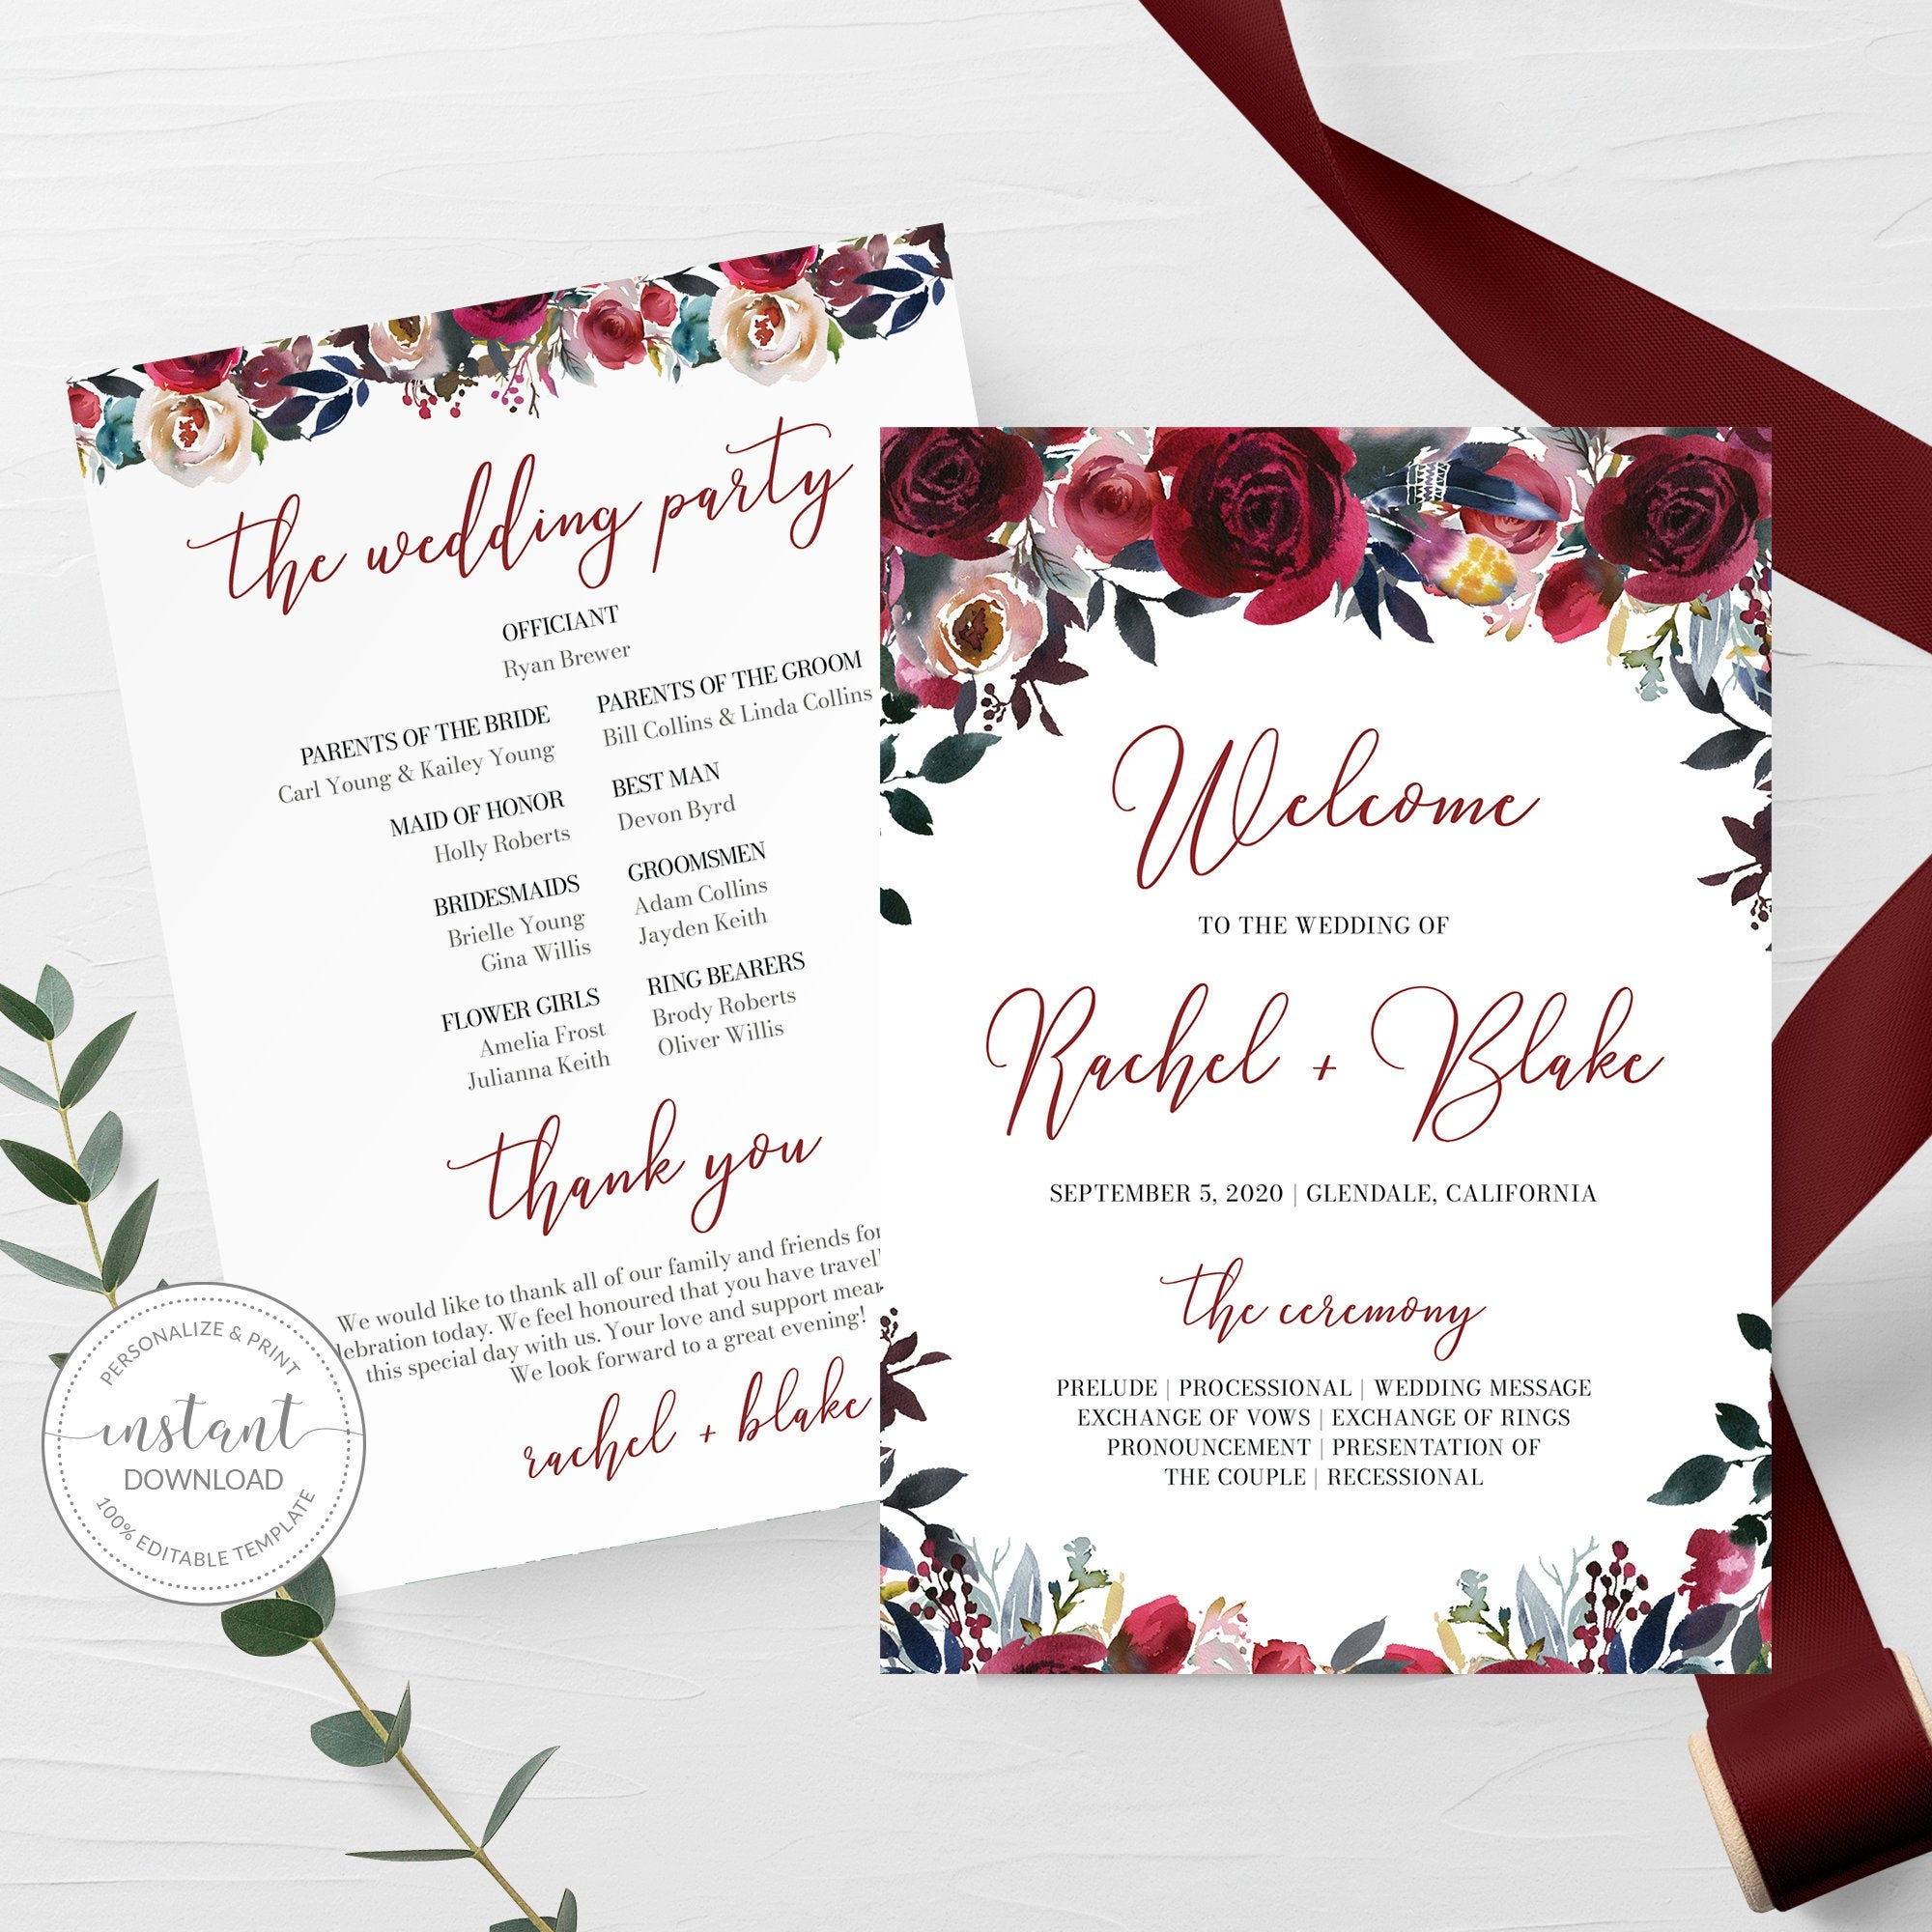 Burgundy and Navy Wedding Ceremony Program Template, Winter Wedding Programs Burgundy Floral, 5x7 DIGITAL DOWNLOAD - BB100 - @PlumPolkaDot